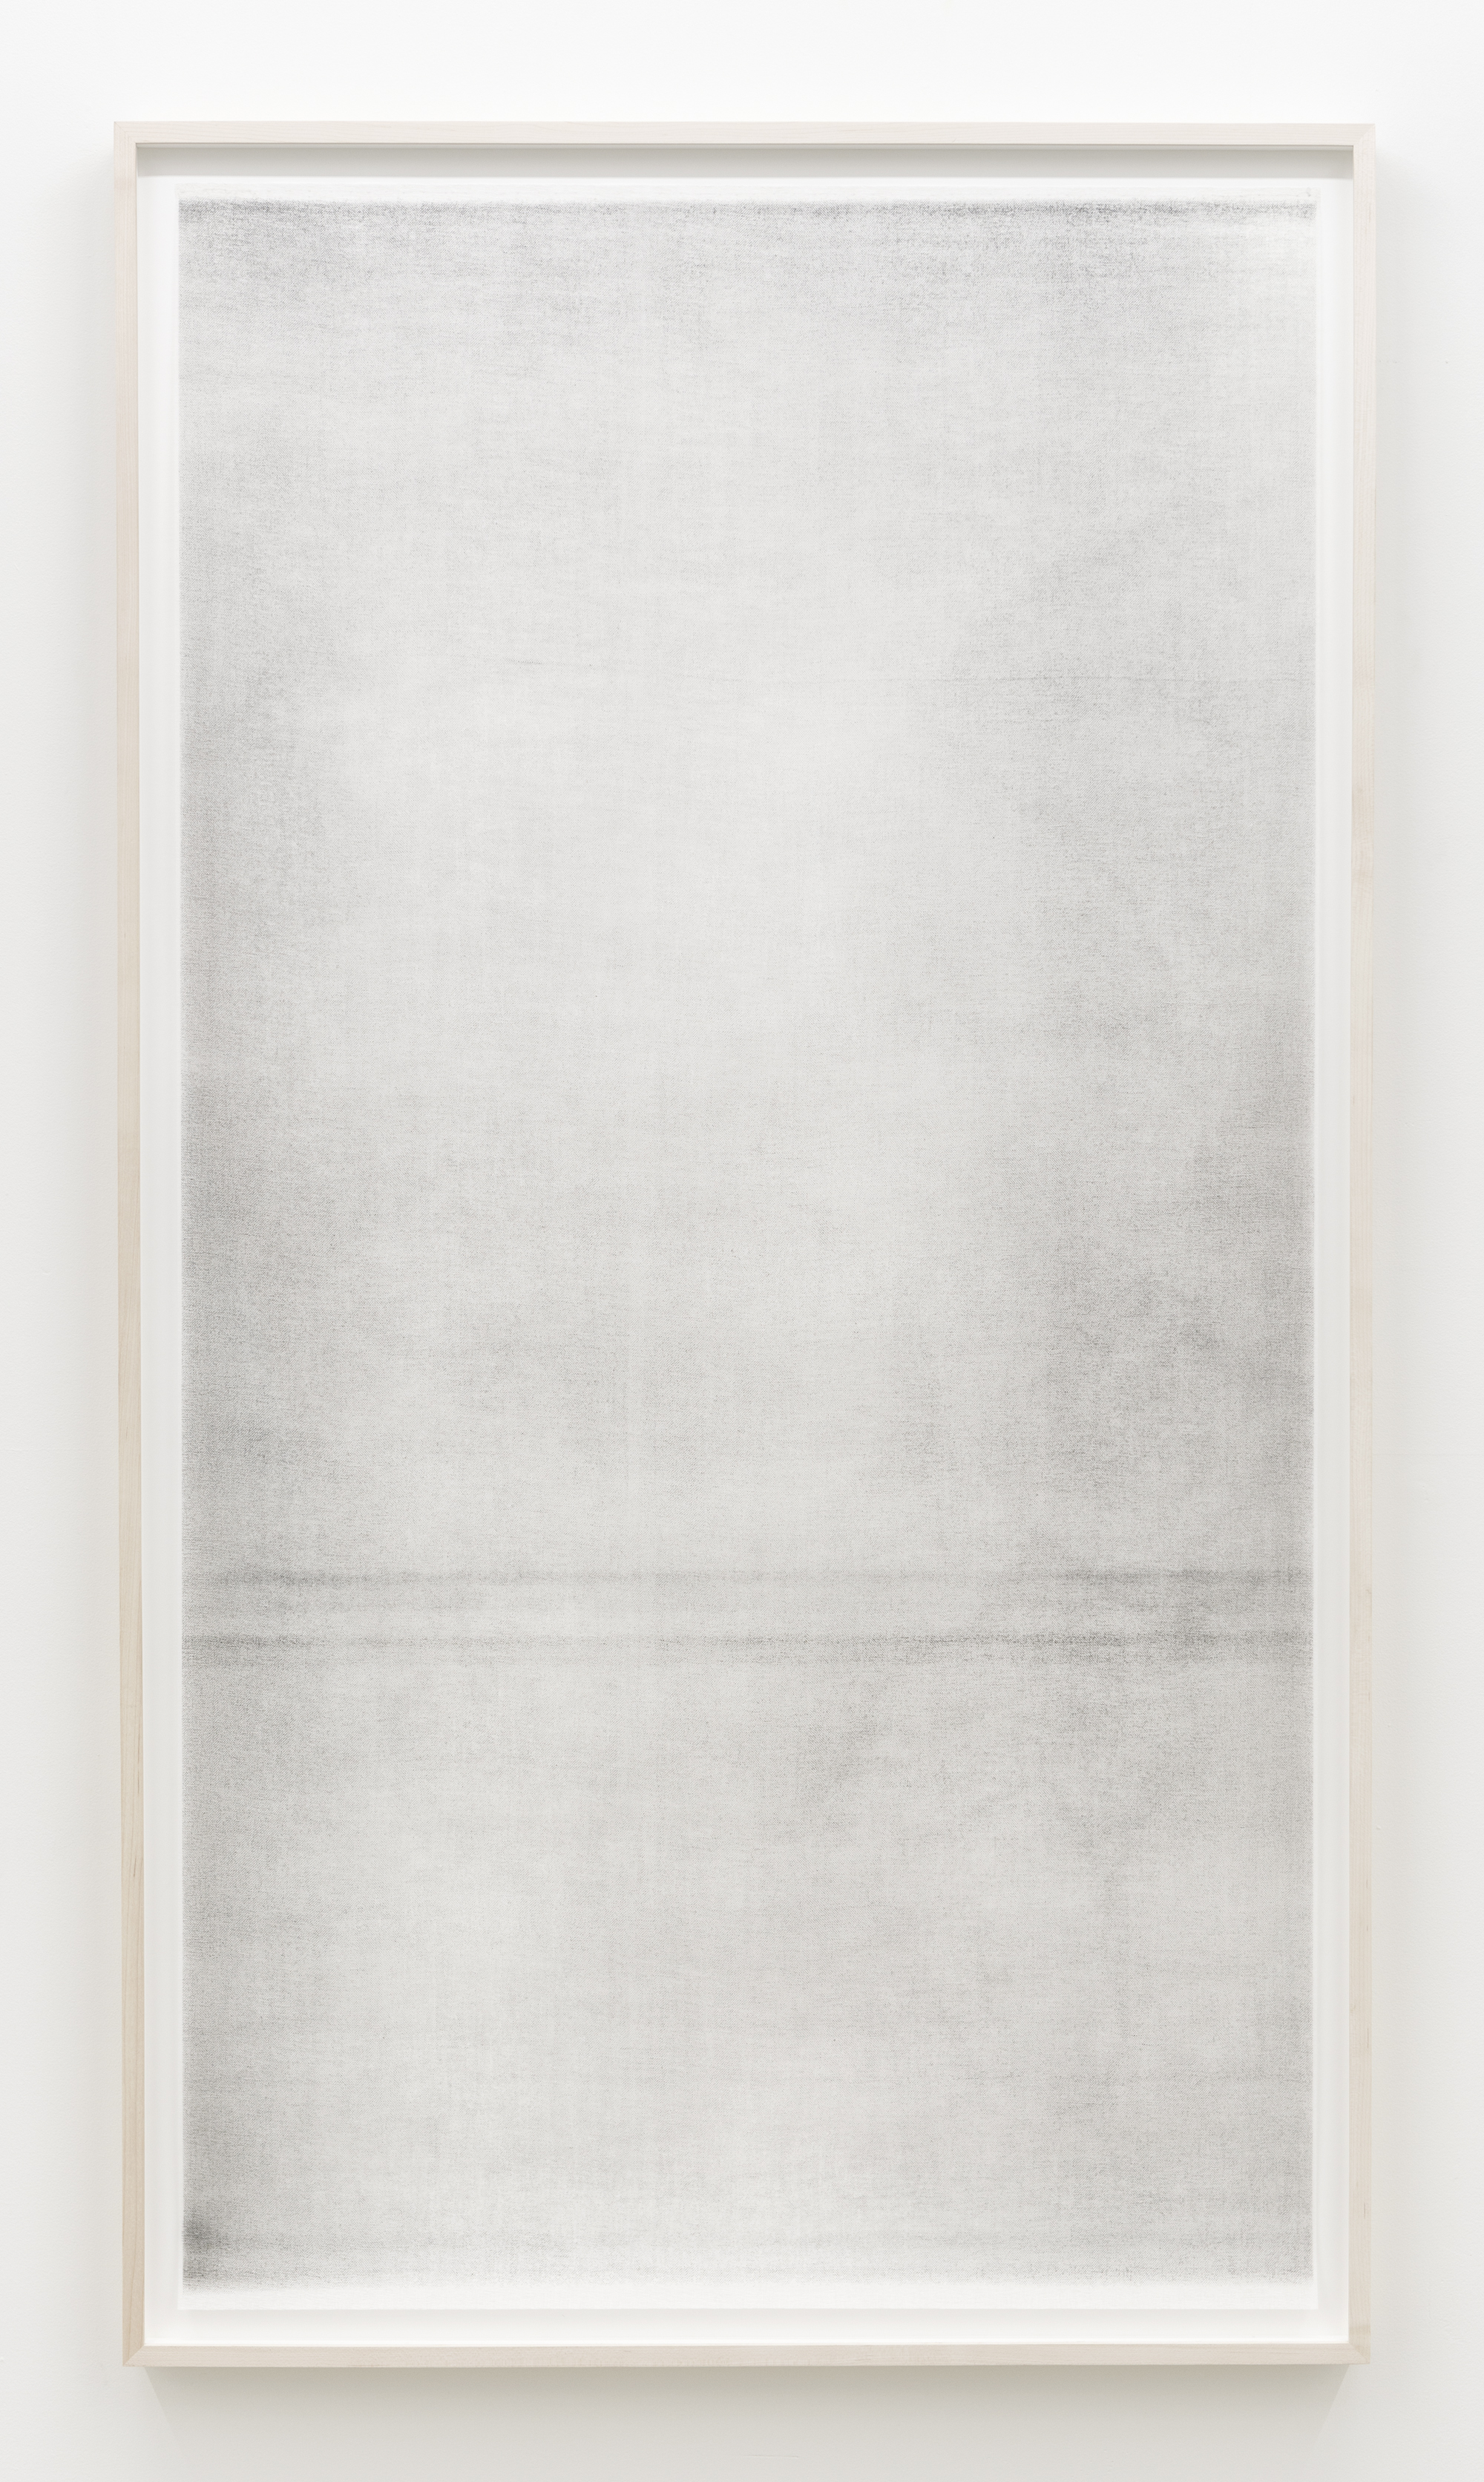 "Jim Verburg,  Untitled (when it settles #4  from the series  A Certain Silence ), 2017, oil, graphite and charcoal on tarlatan, 59"" x 35"" (150 x 89 cm)"